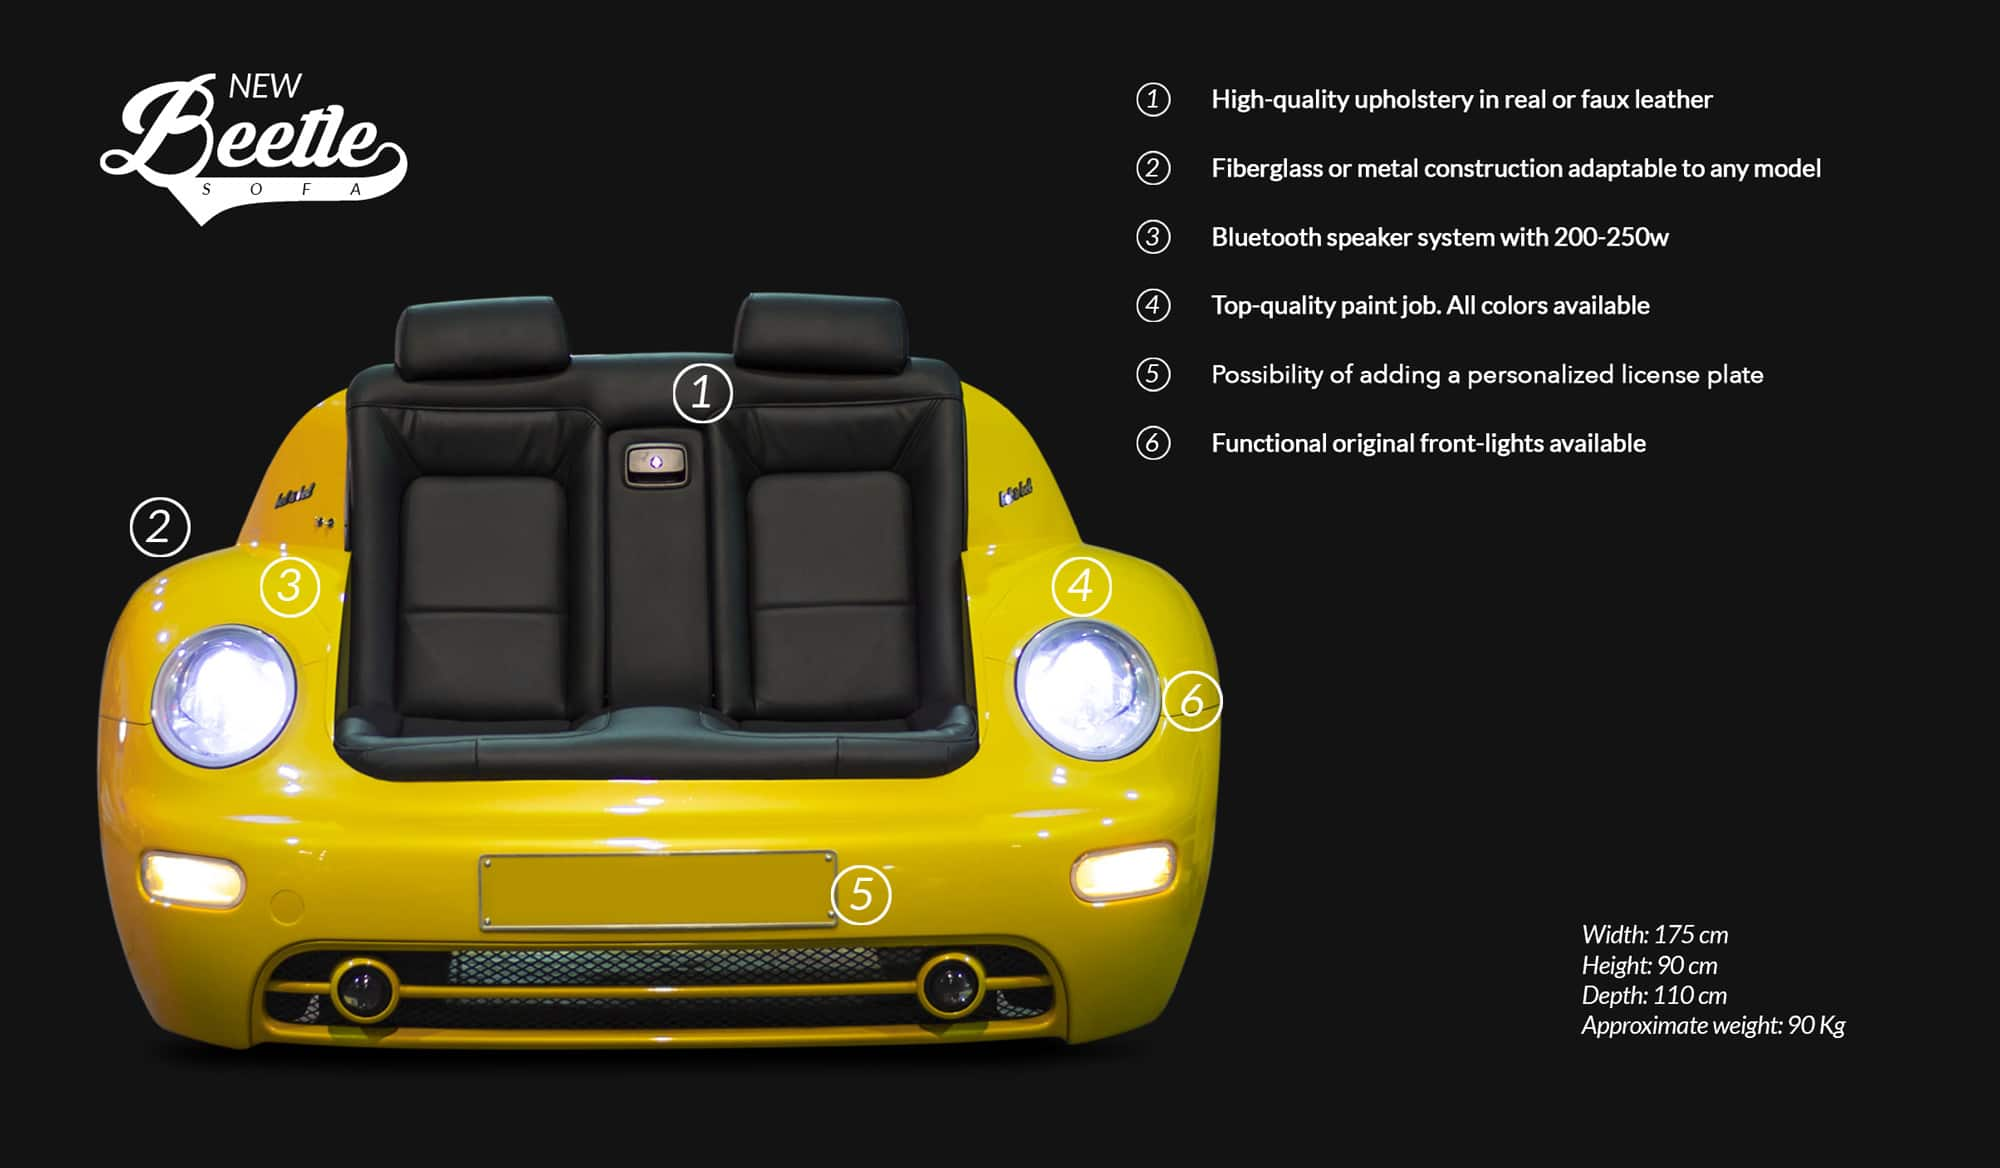 New Beetle Sofa Technical Specifications